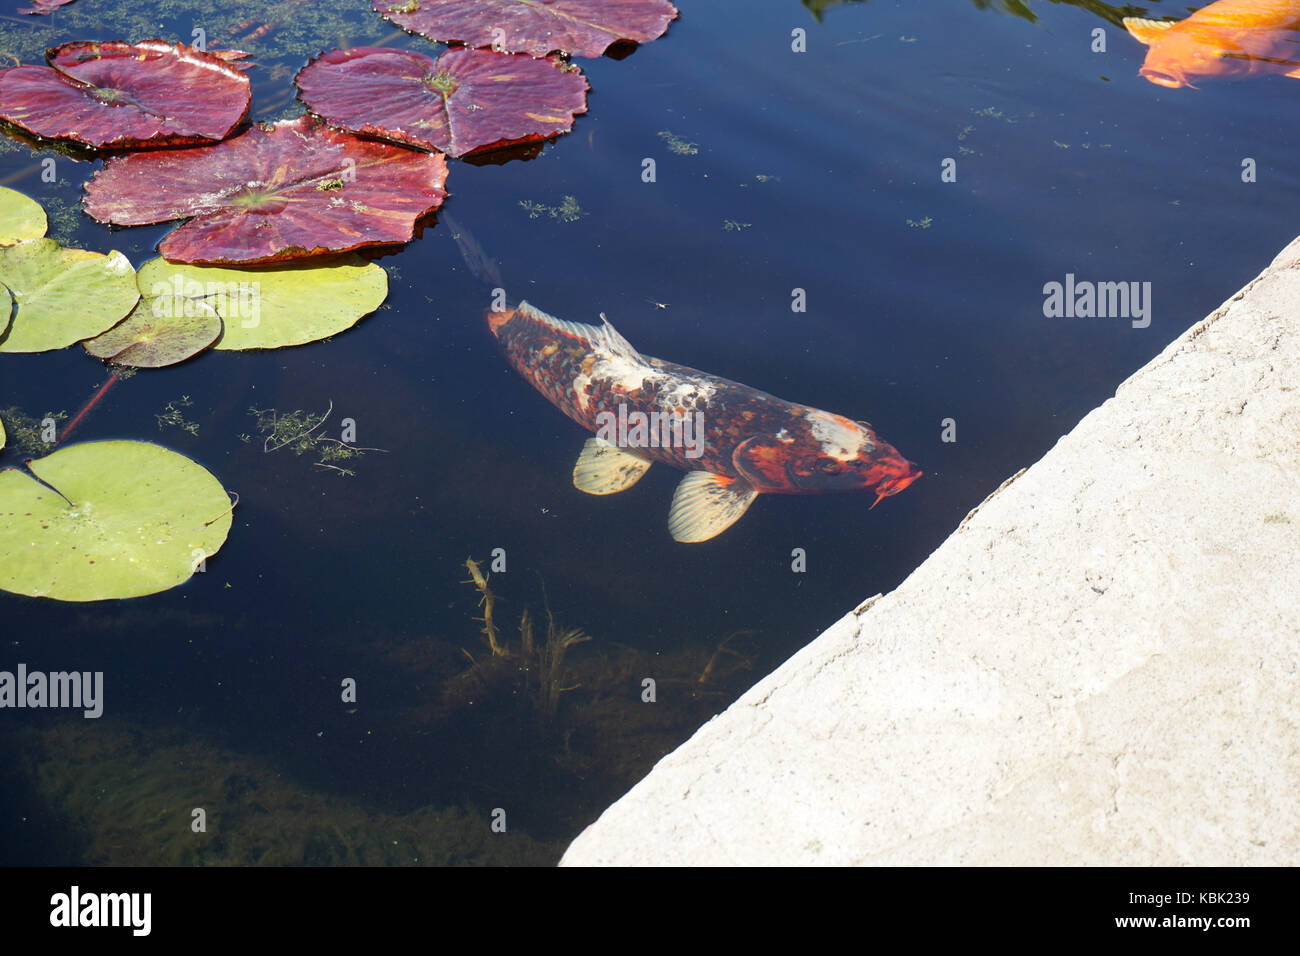 Lily Pad Pond Stock Photos & Lily Pad Pond Stock Images - Alamy